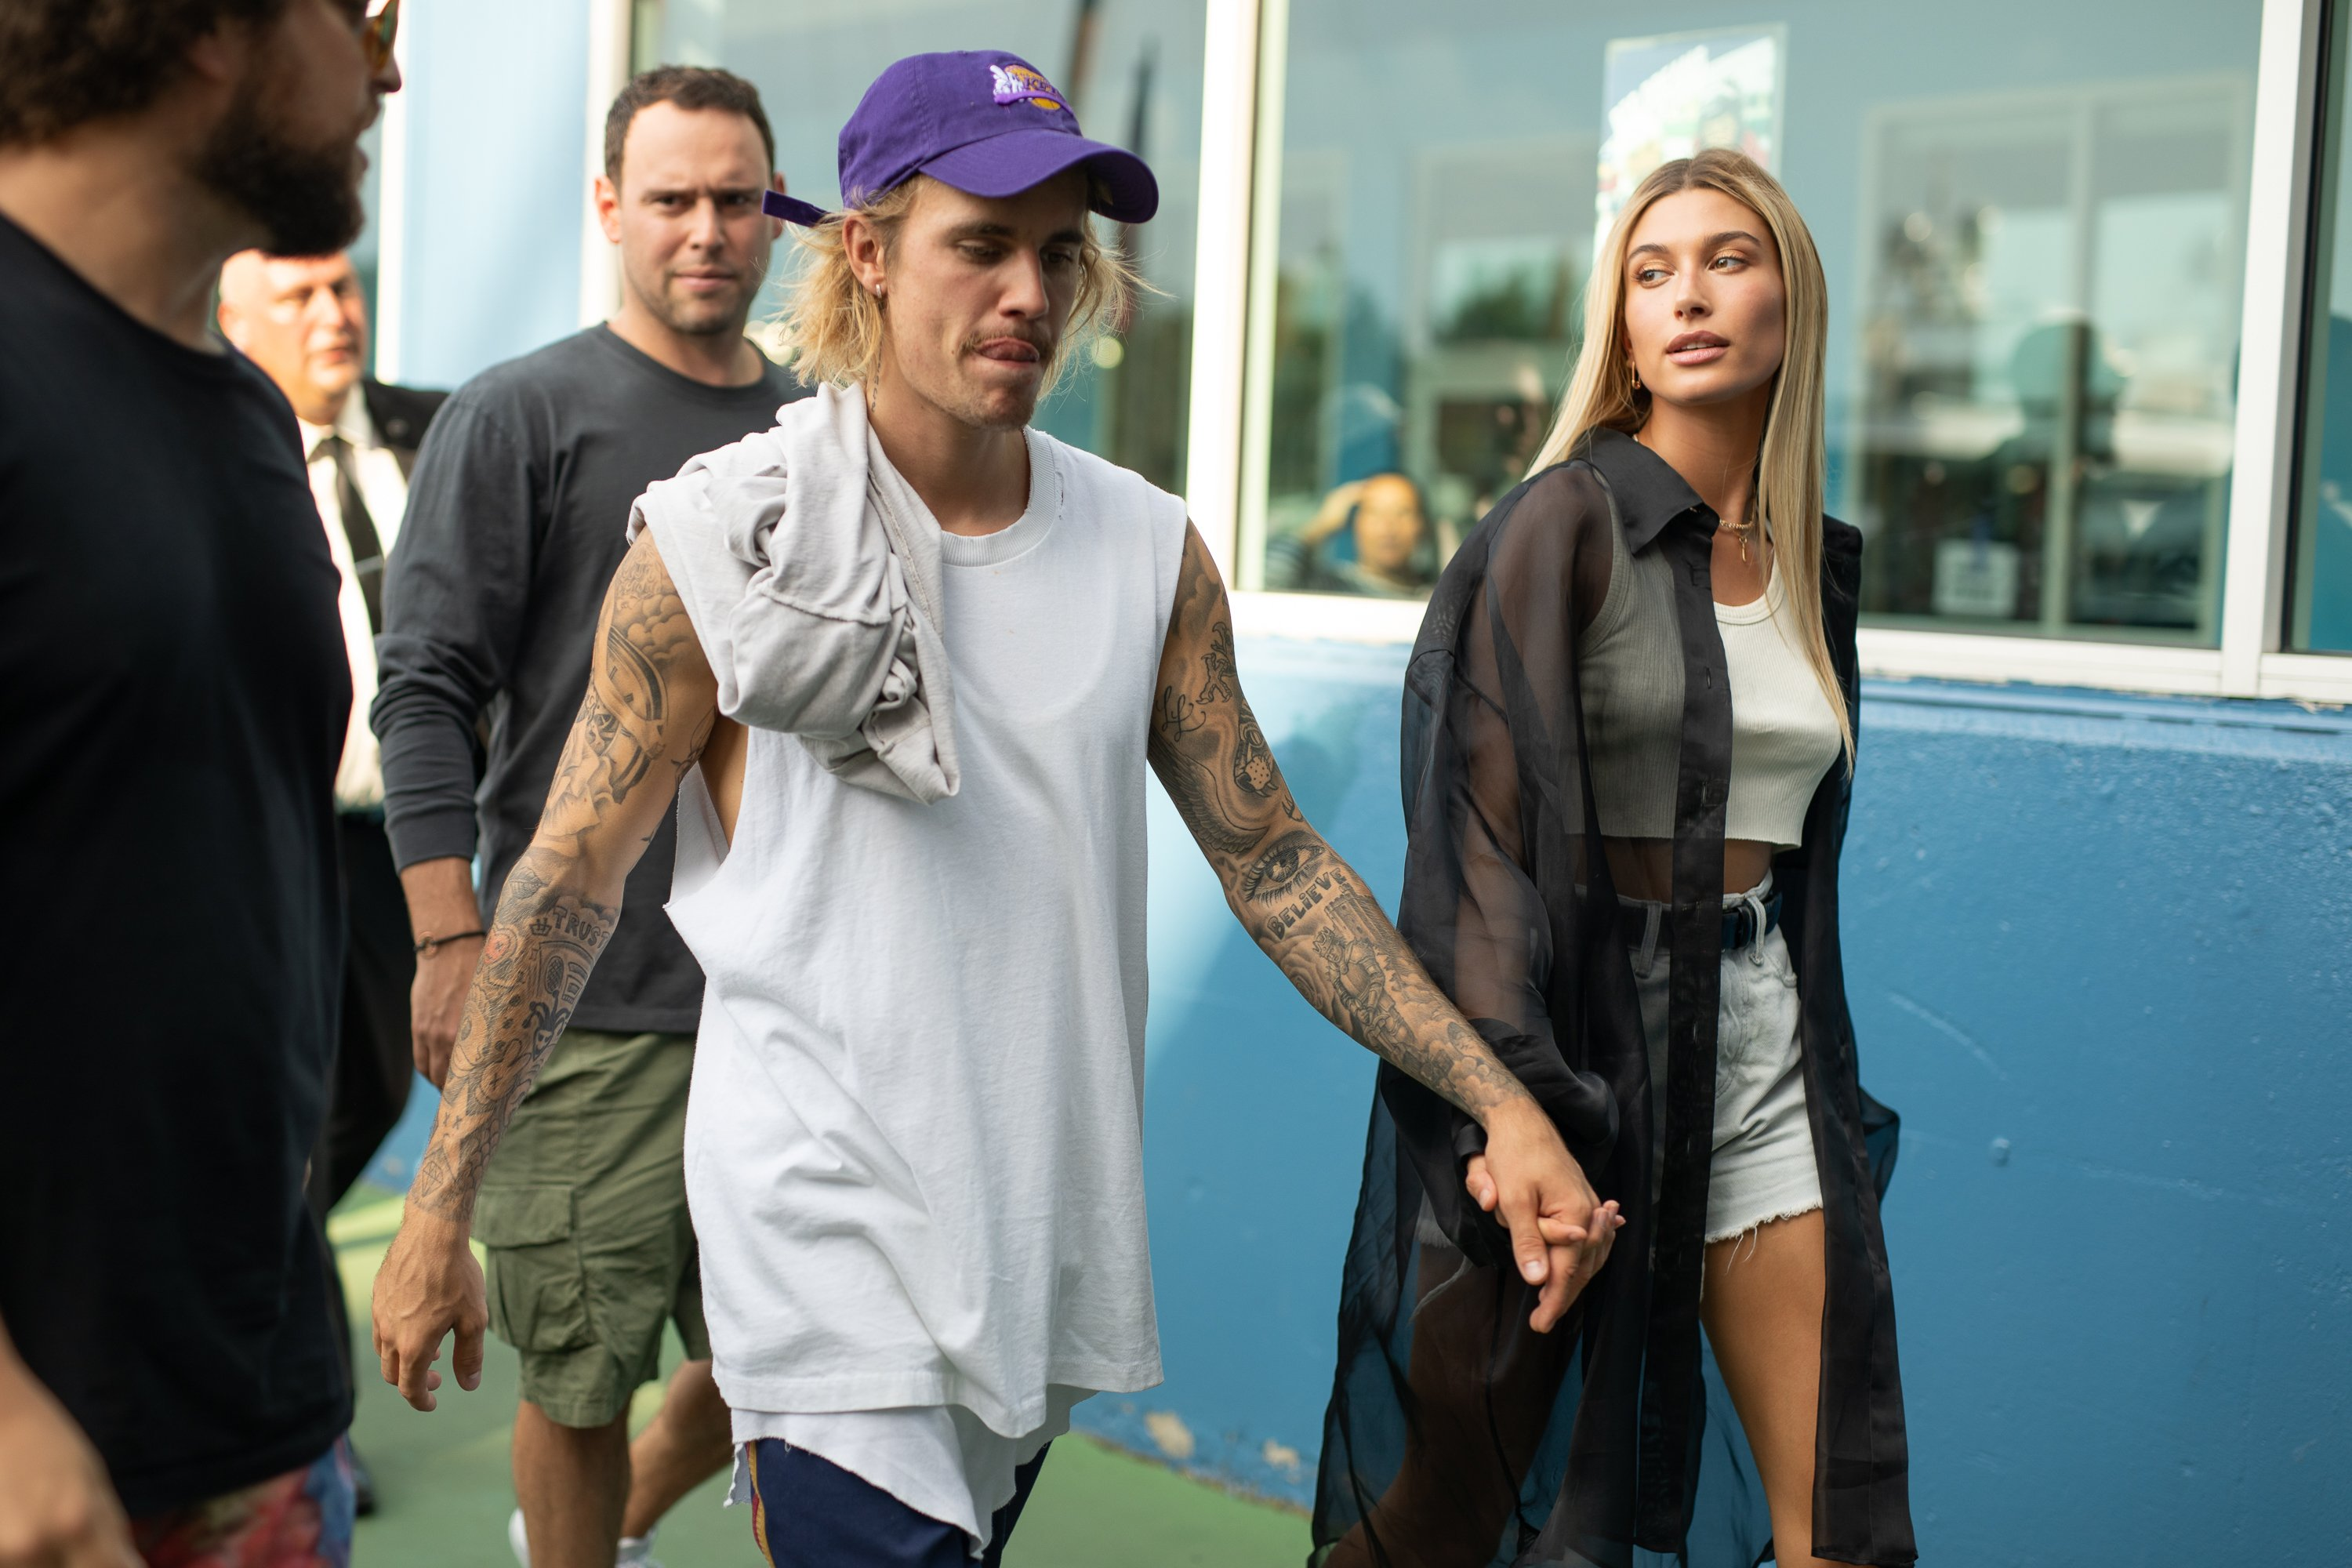 Justin Bieber and Hailey Baldwin are seen on the street attending John Elliott during New York Fashion Week on September 6, 2018. | Photo: Getty Images.